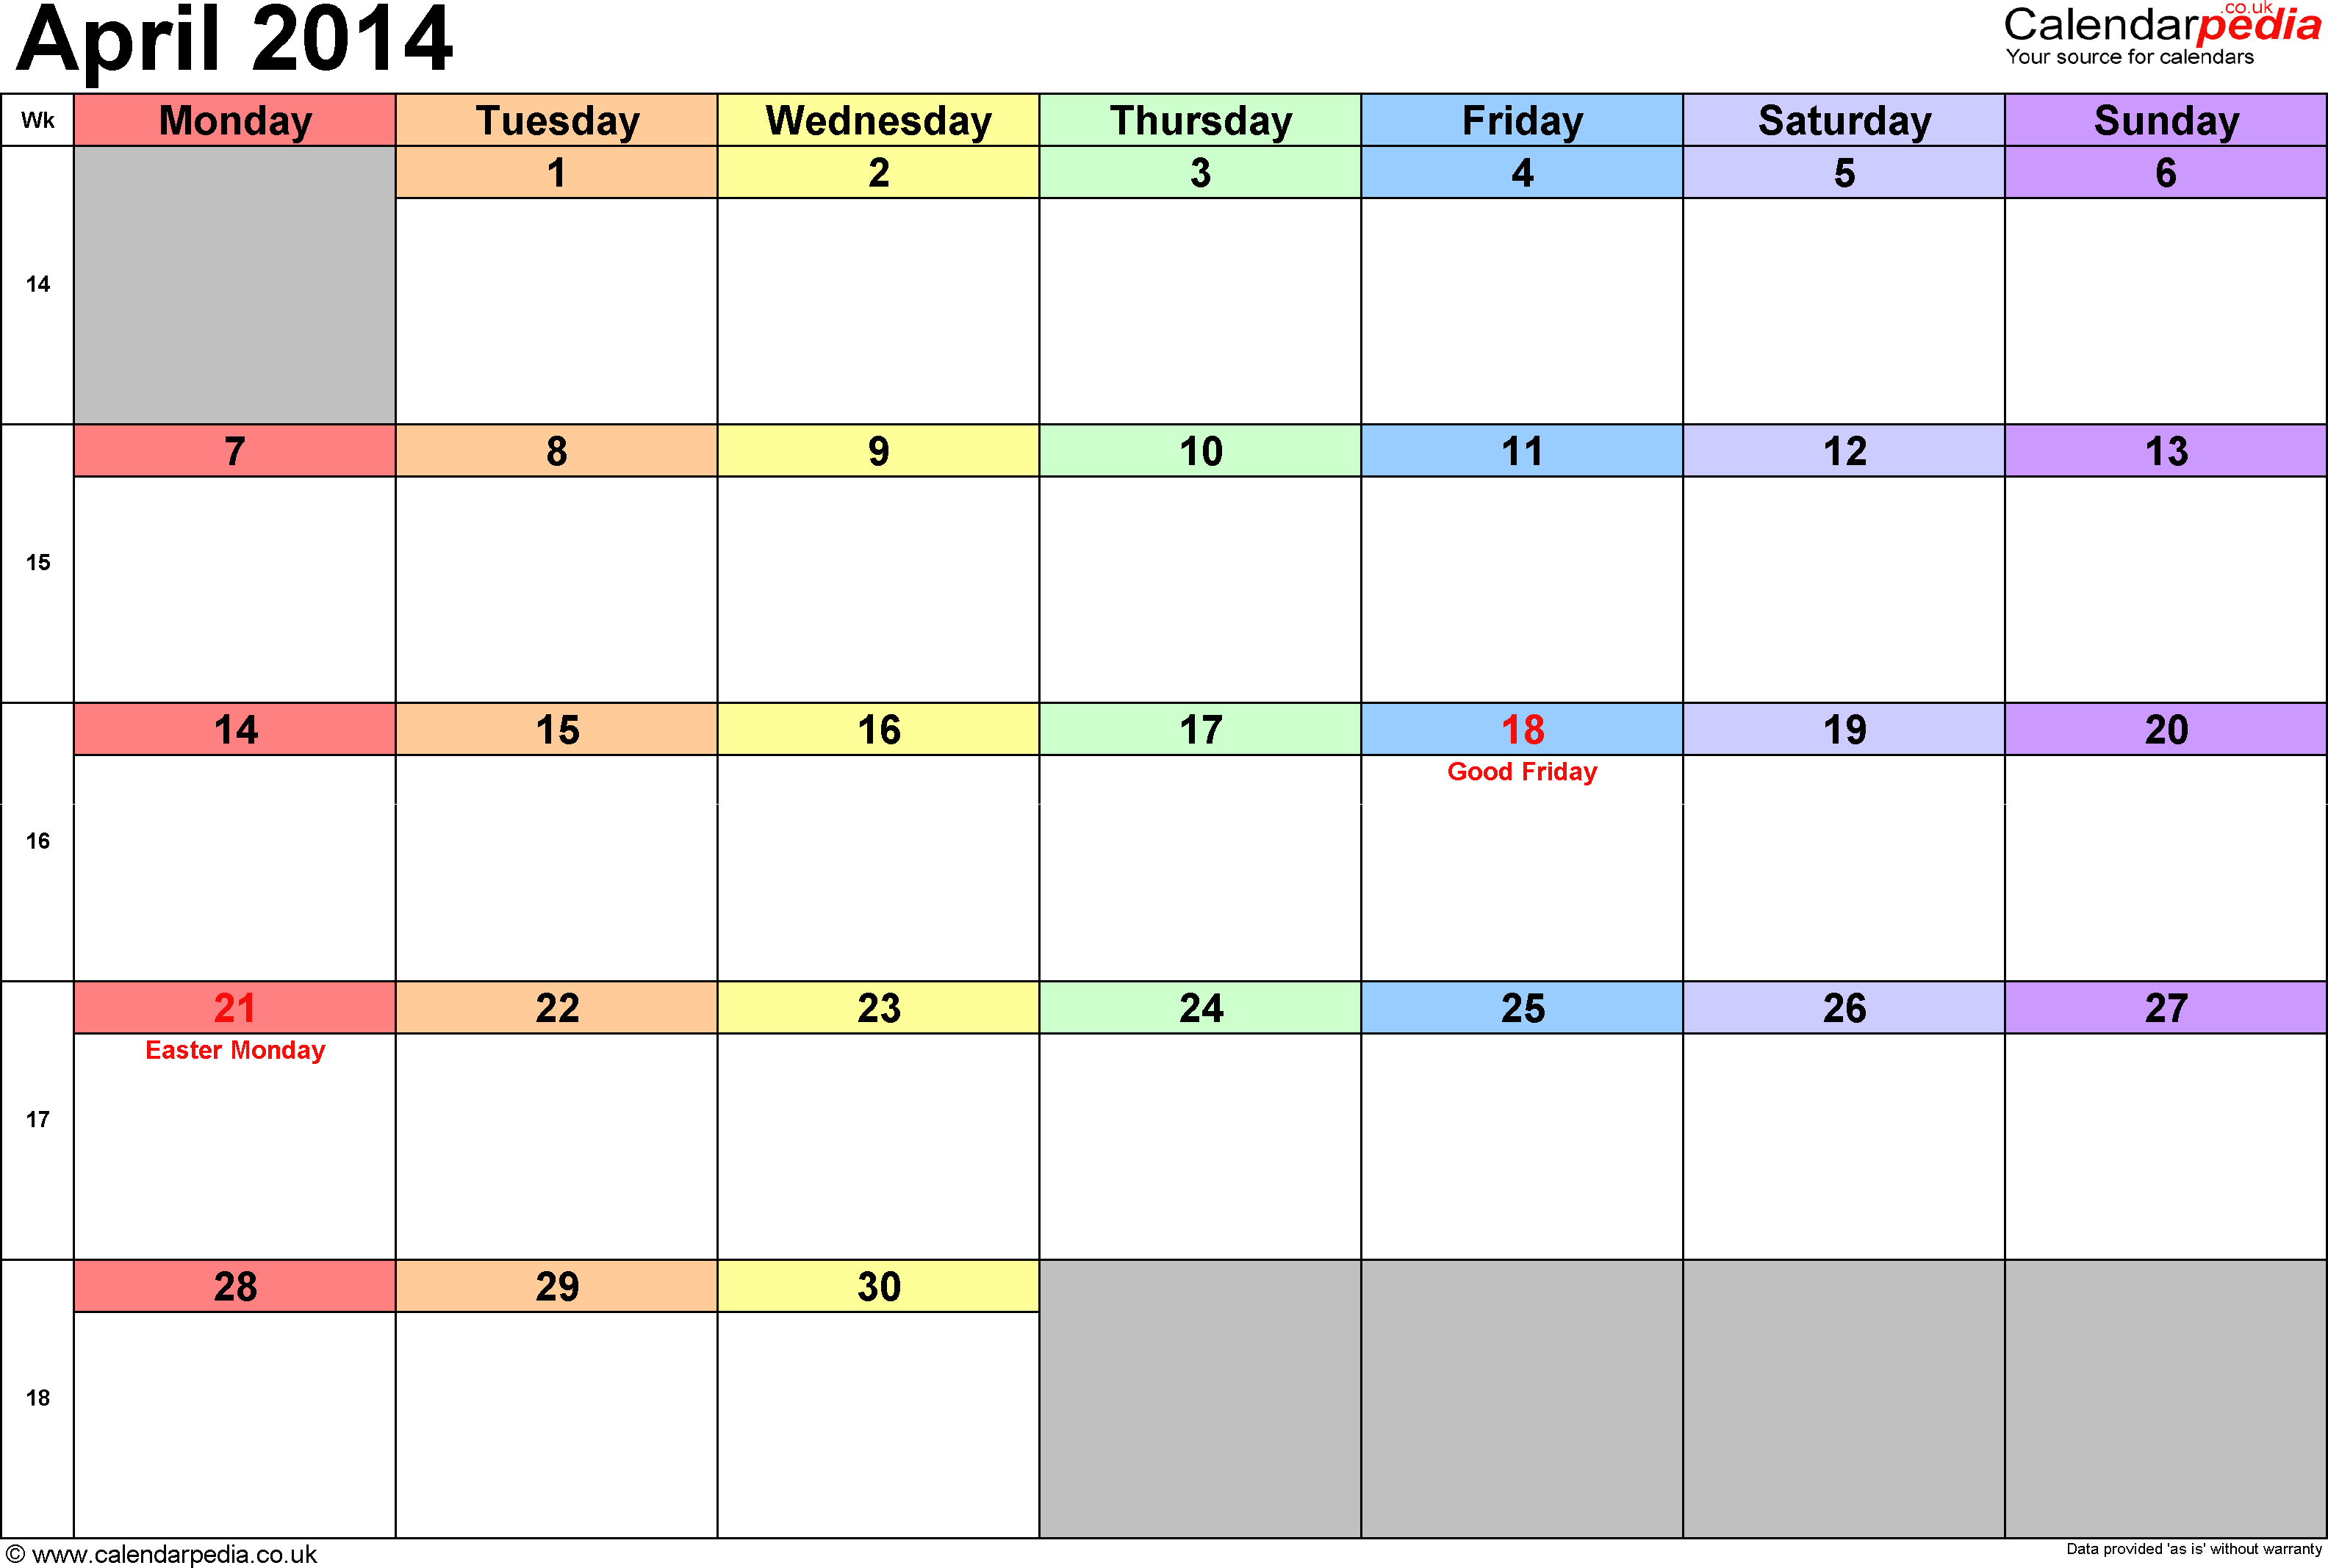 Weekly Calendar Template April 2014 calendar april 2014 uk, bank